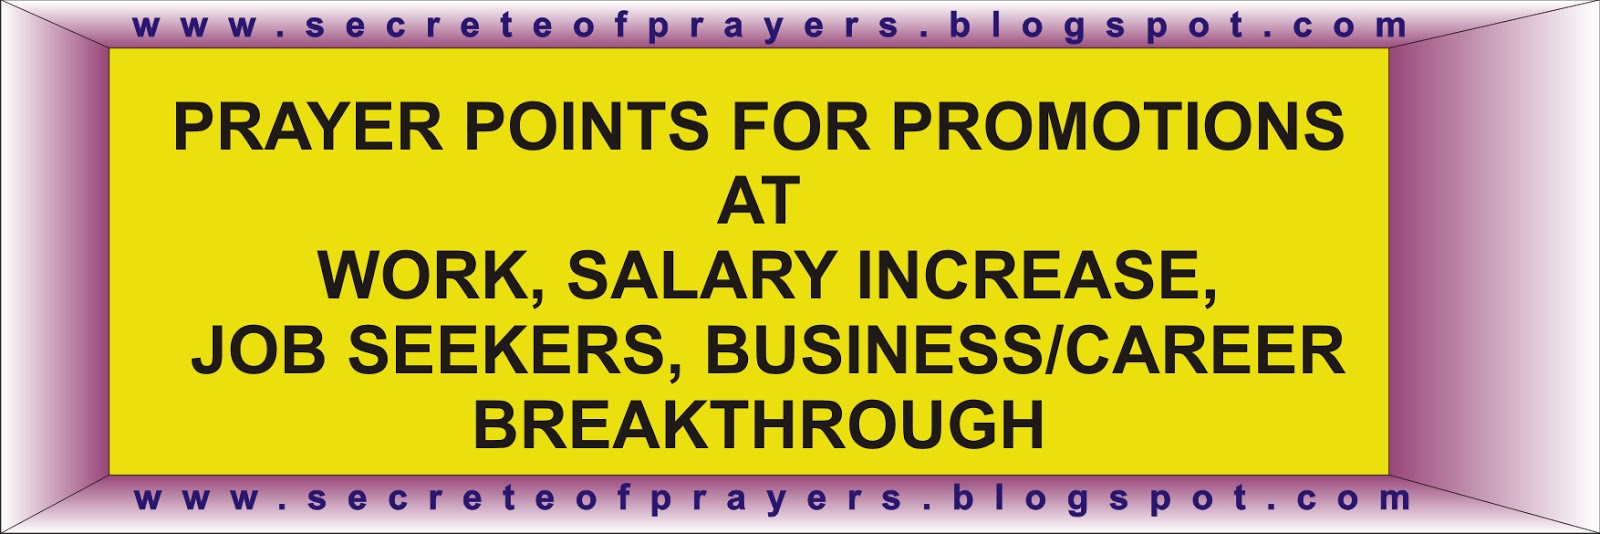 secreteofprayers: PRAYER POINTS FOR PROMOTIONS AT WORK